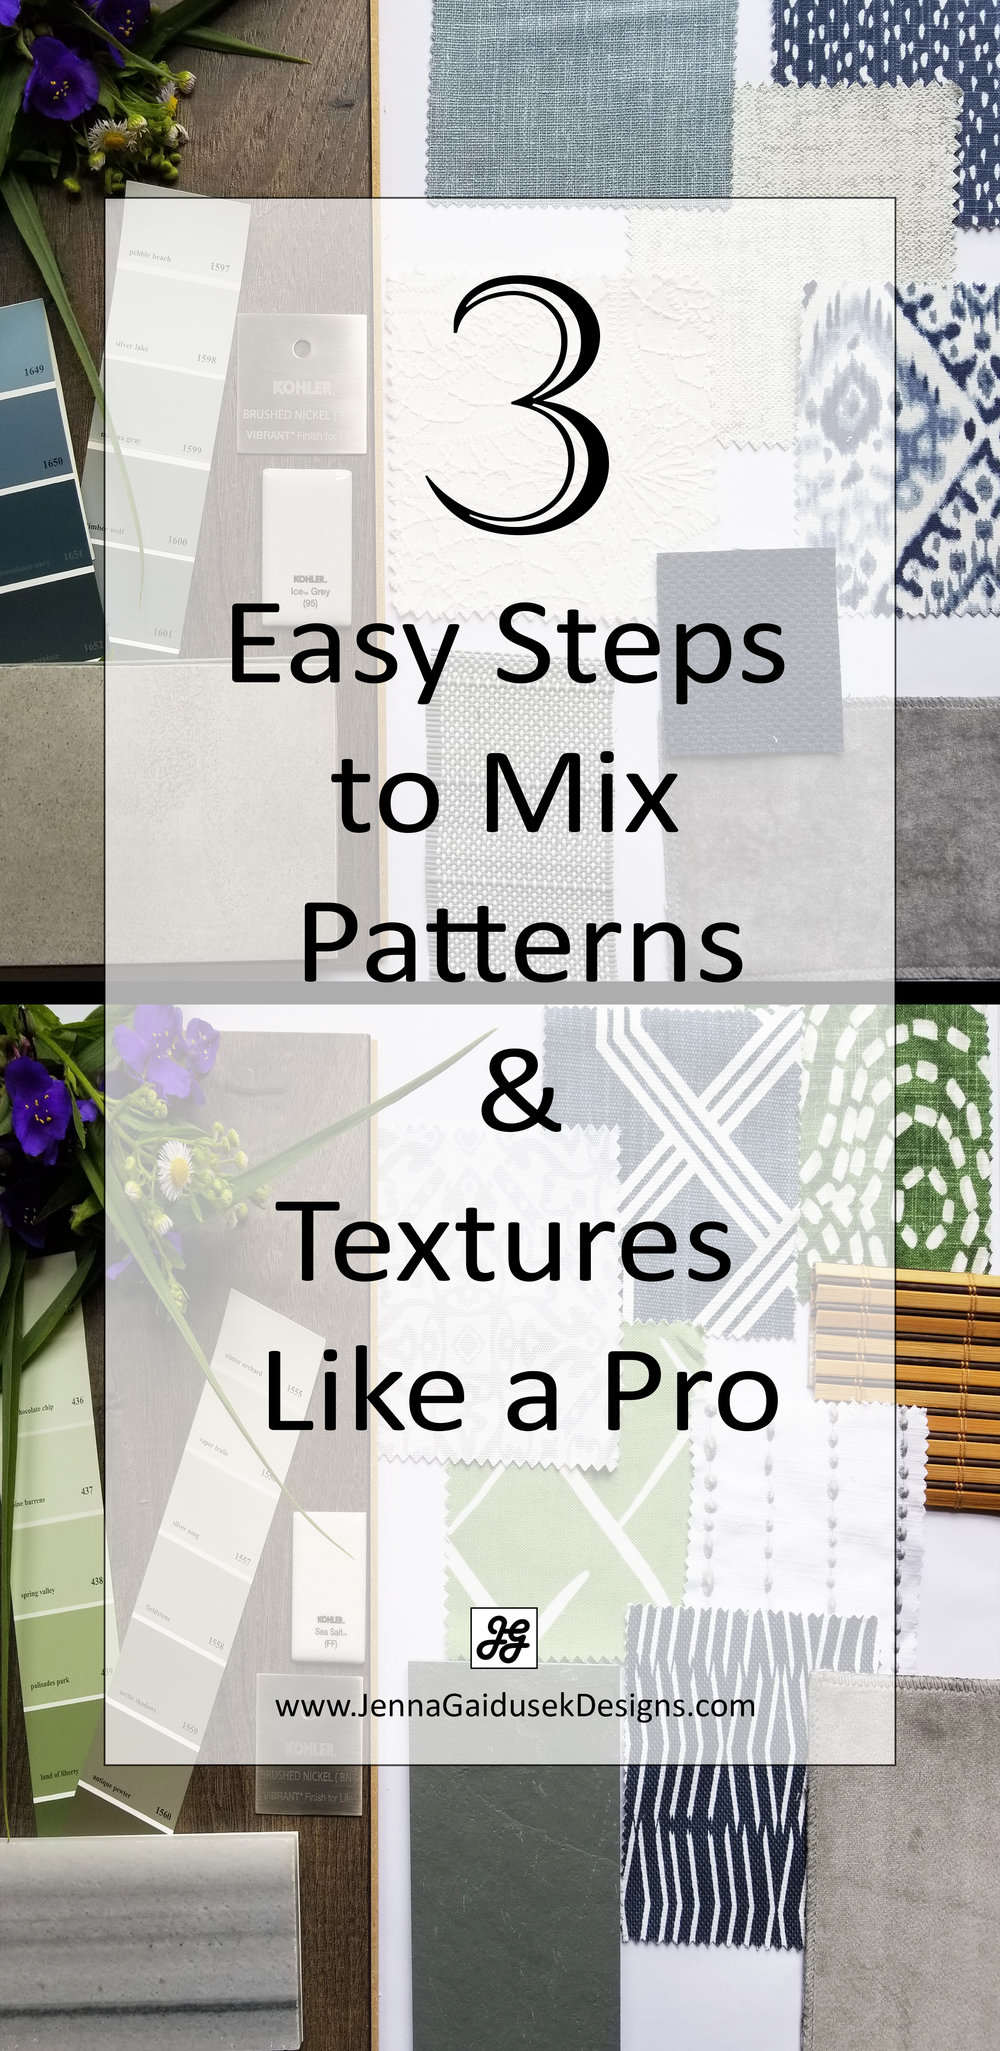 3 steps to mix patterns double.png